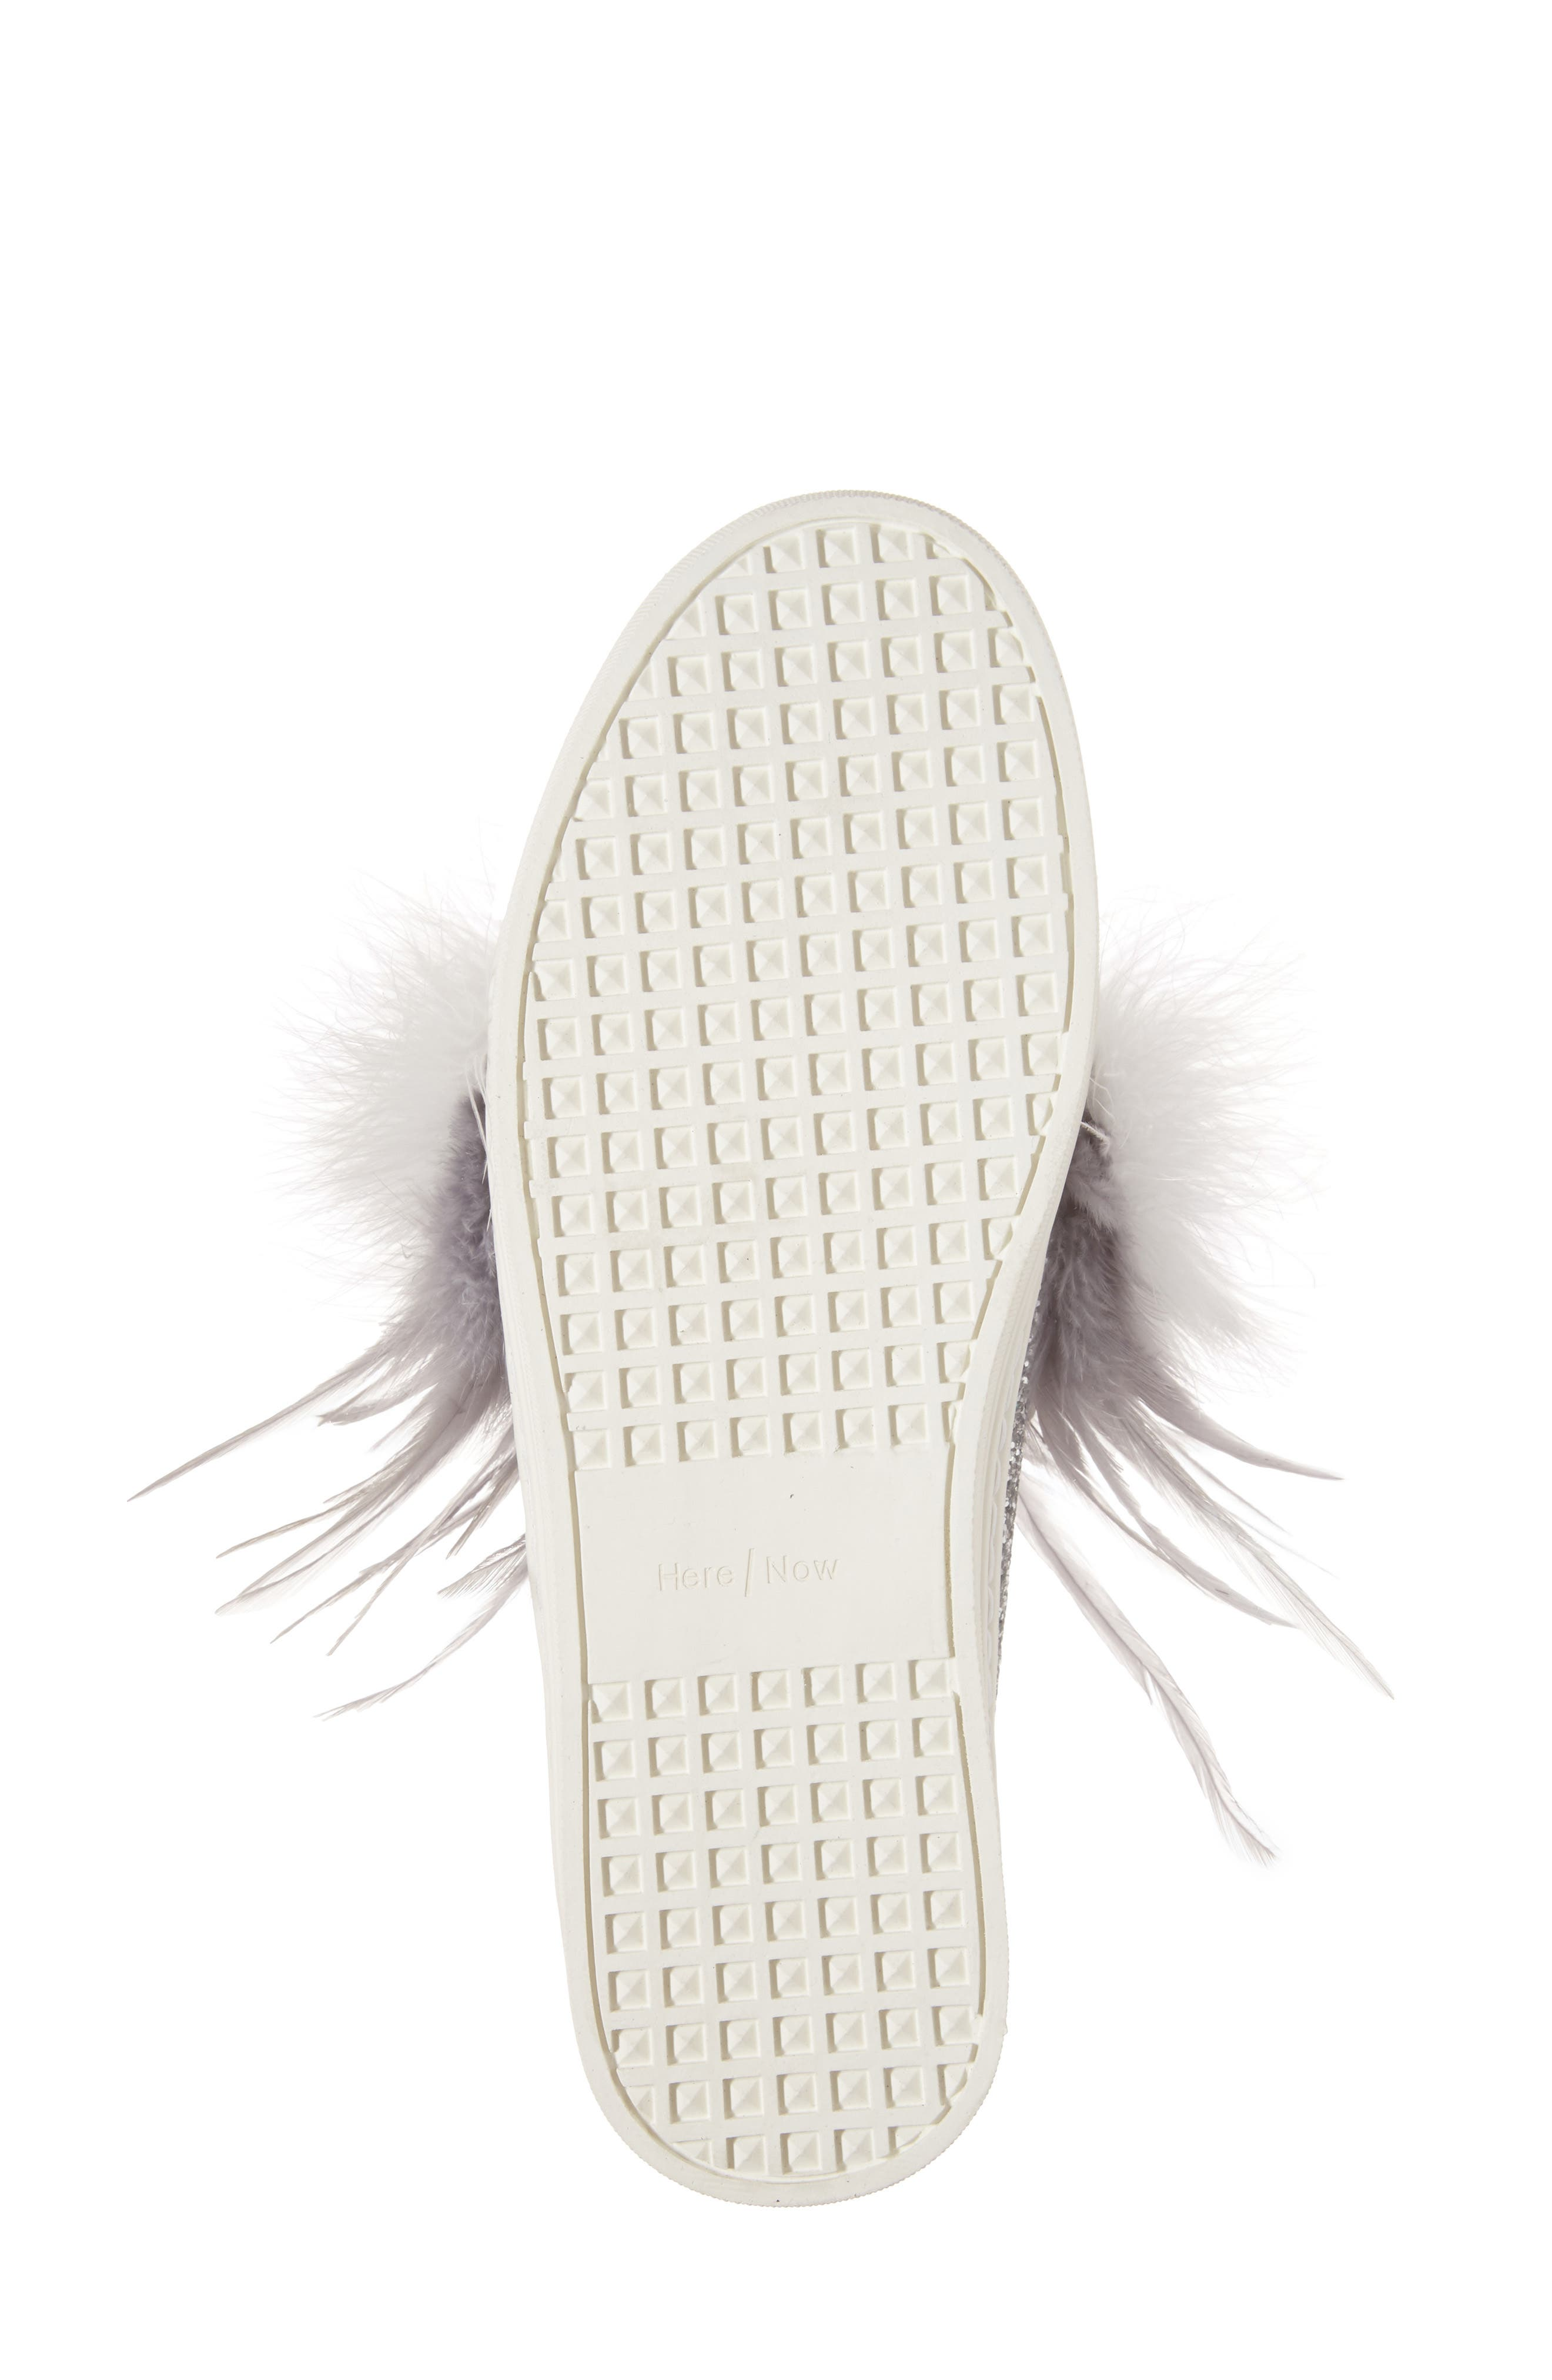 Kate Feathered Slip-On Sneaker,                             Alternate thumbnail 6, color,                             Grey Feather Silver Glitter